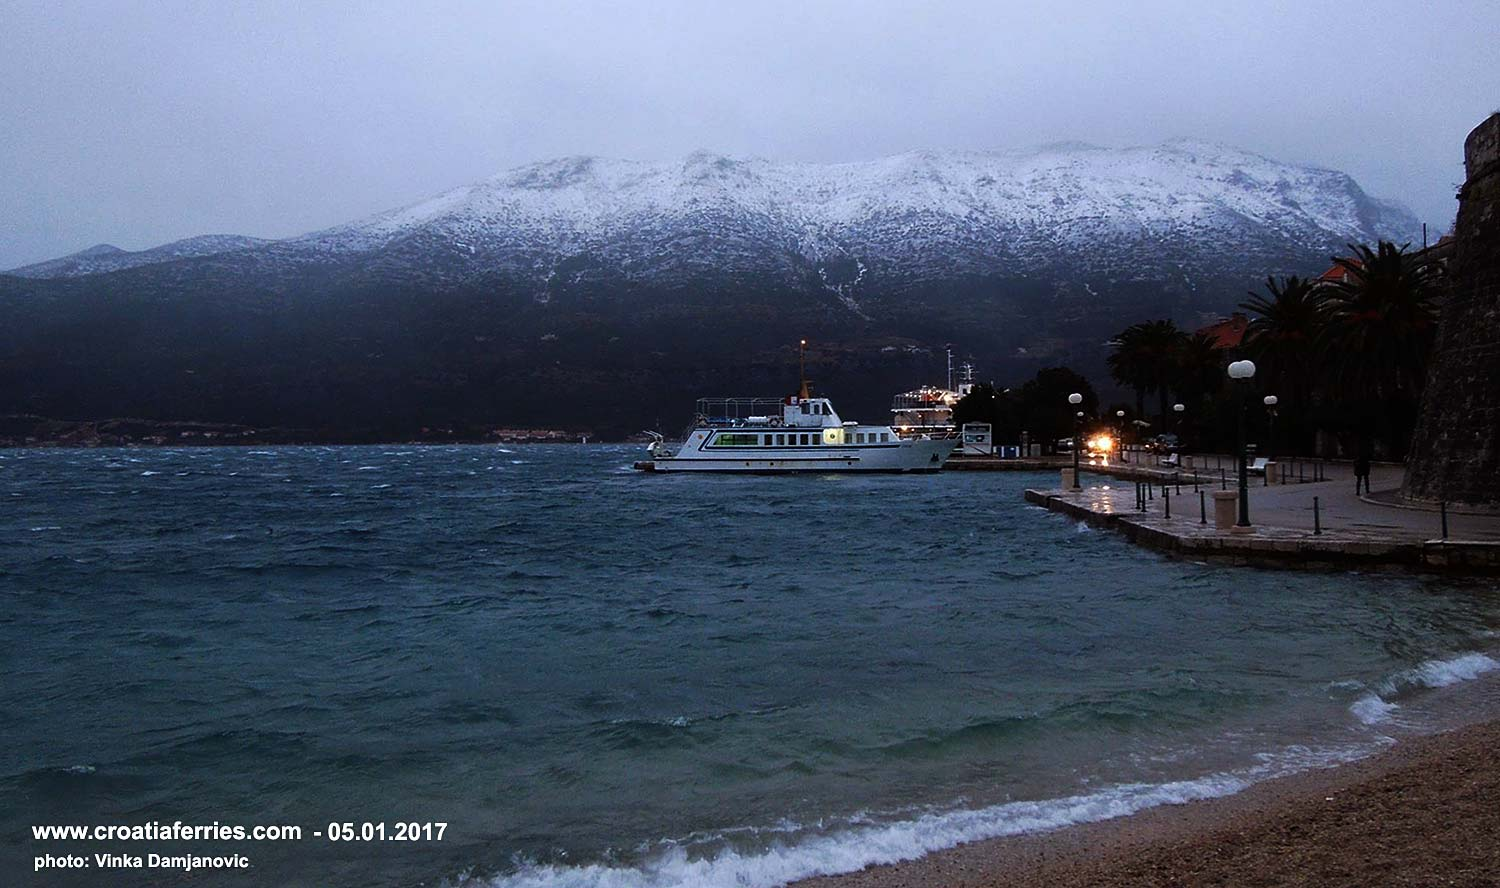 In Adriatic today: A cold front brought snow and high winds around Korcula today; foot passenger ferry Korcula - Orebic this afternoon docking in Korcula port.